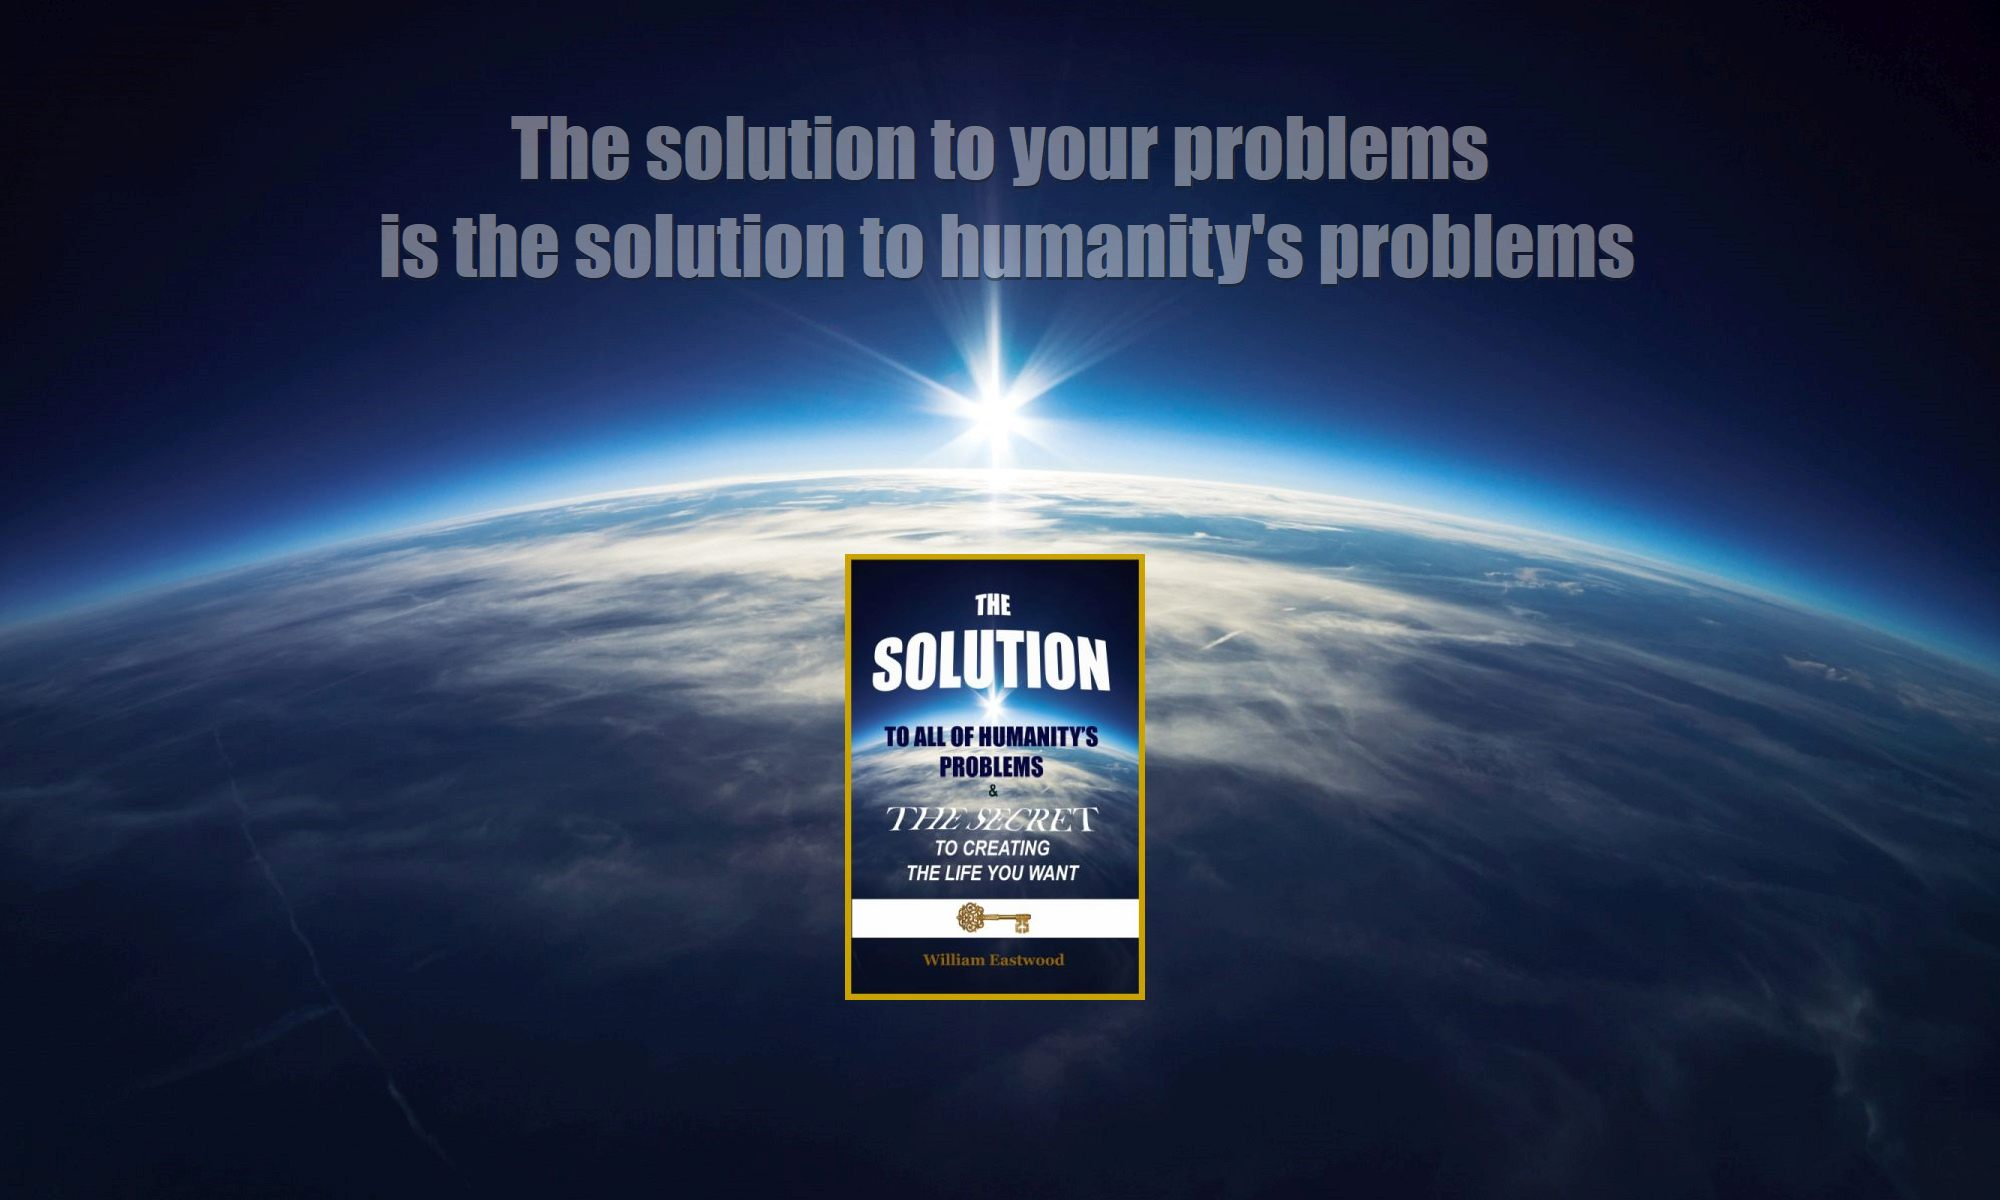 The solution over earthrise